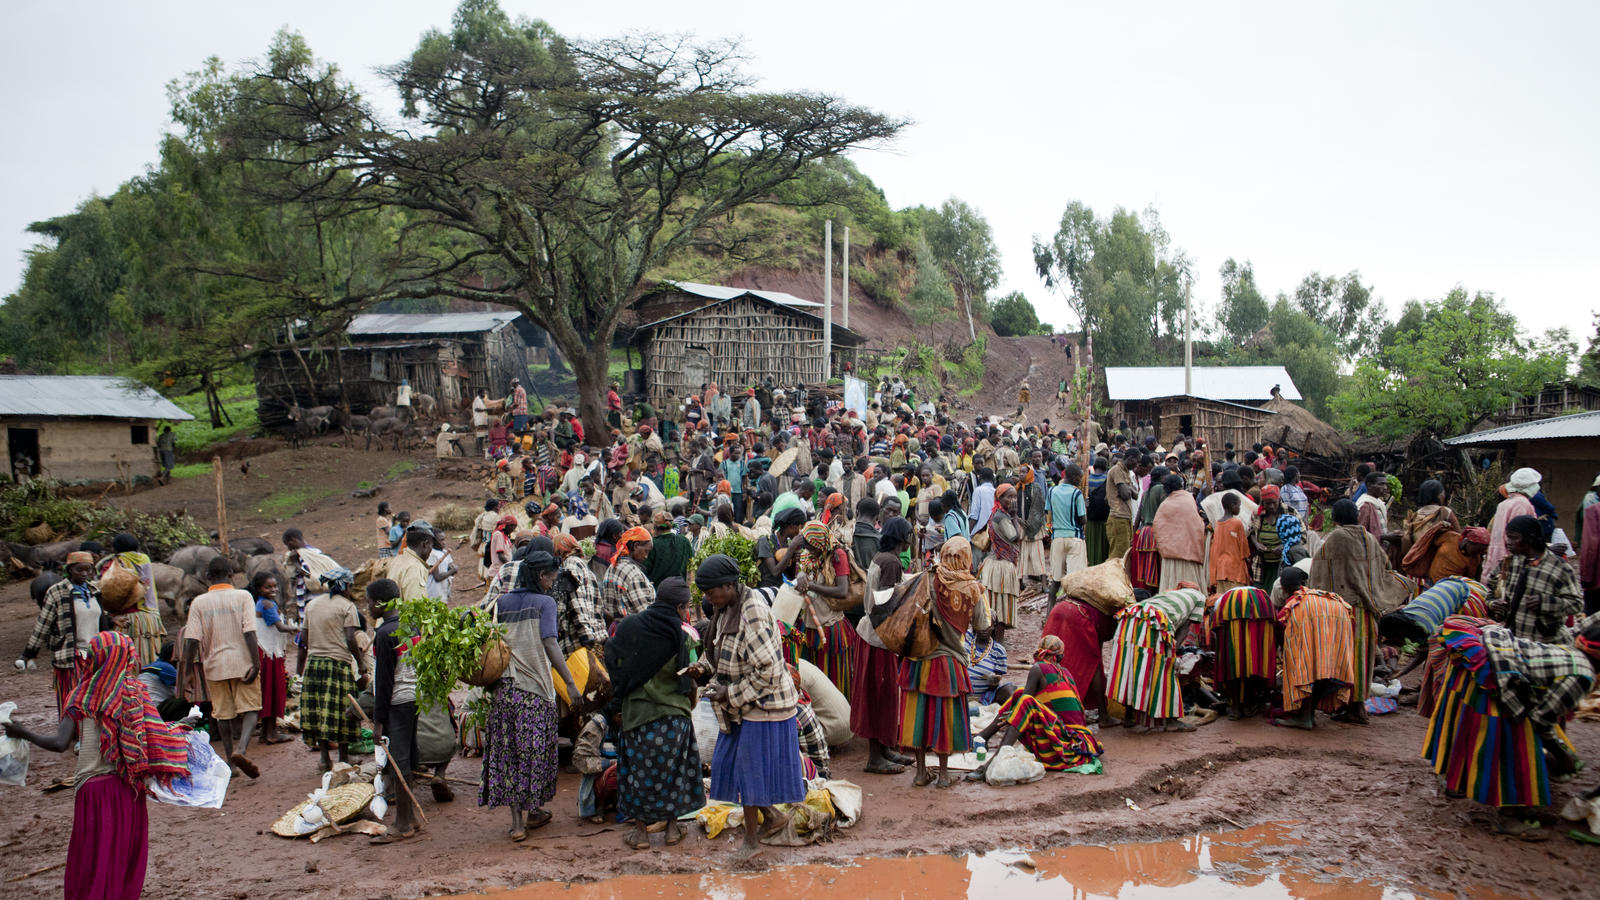 The local weekly market in Teshmale, Konso, Ethiopia ,2013.